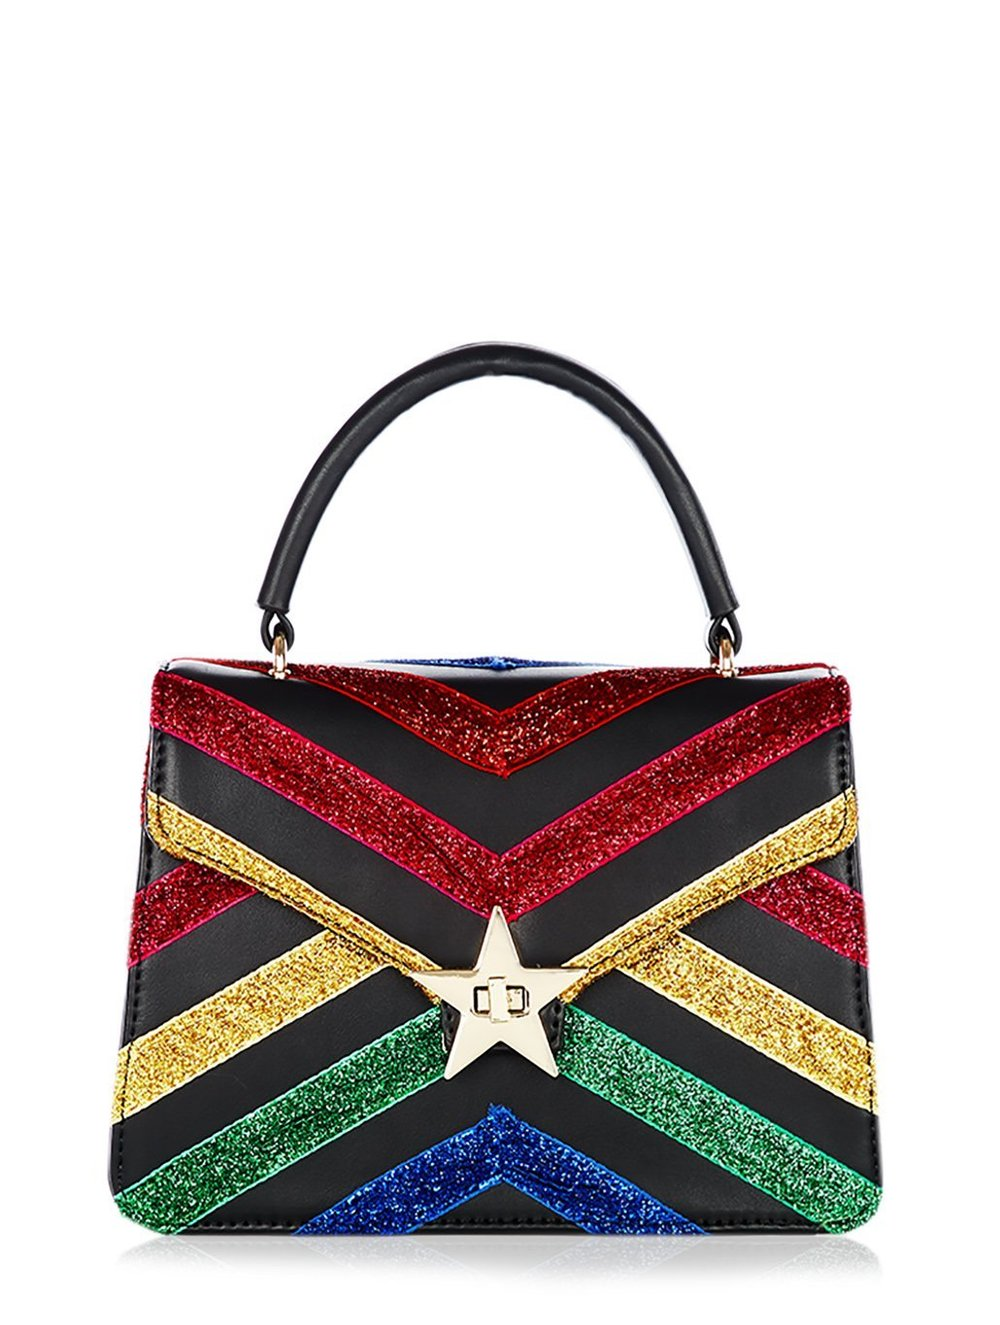 Skinny Dip London Rainbow Bag